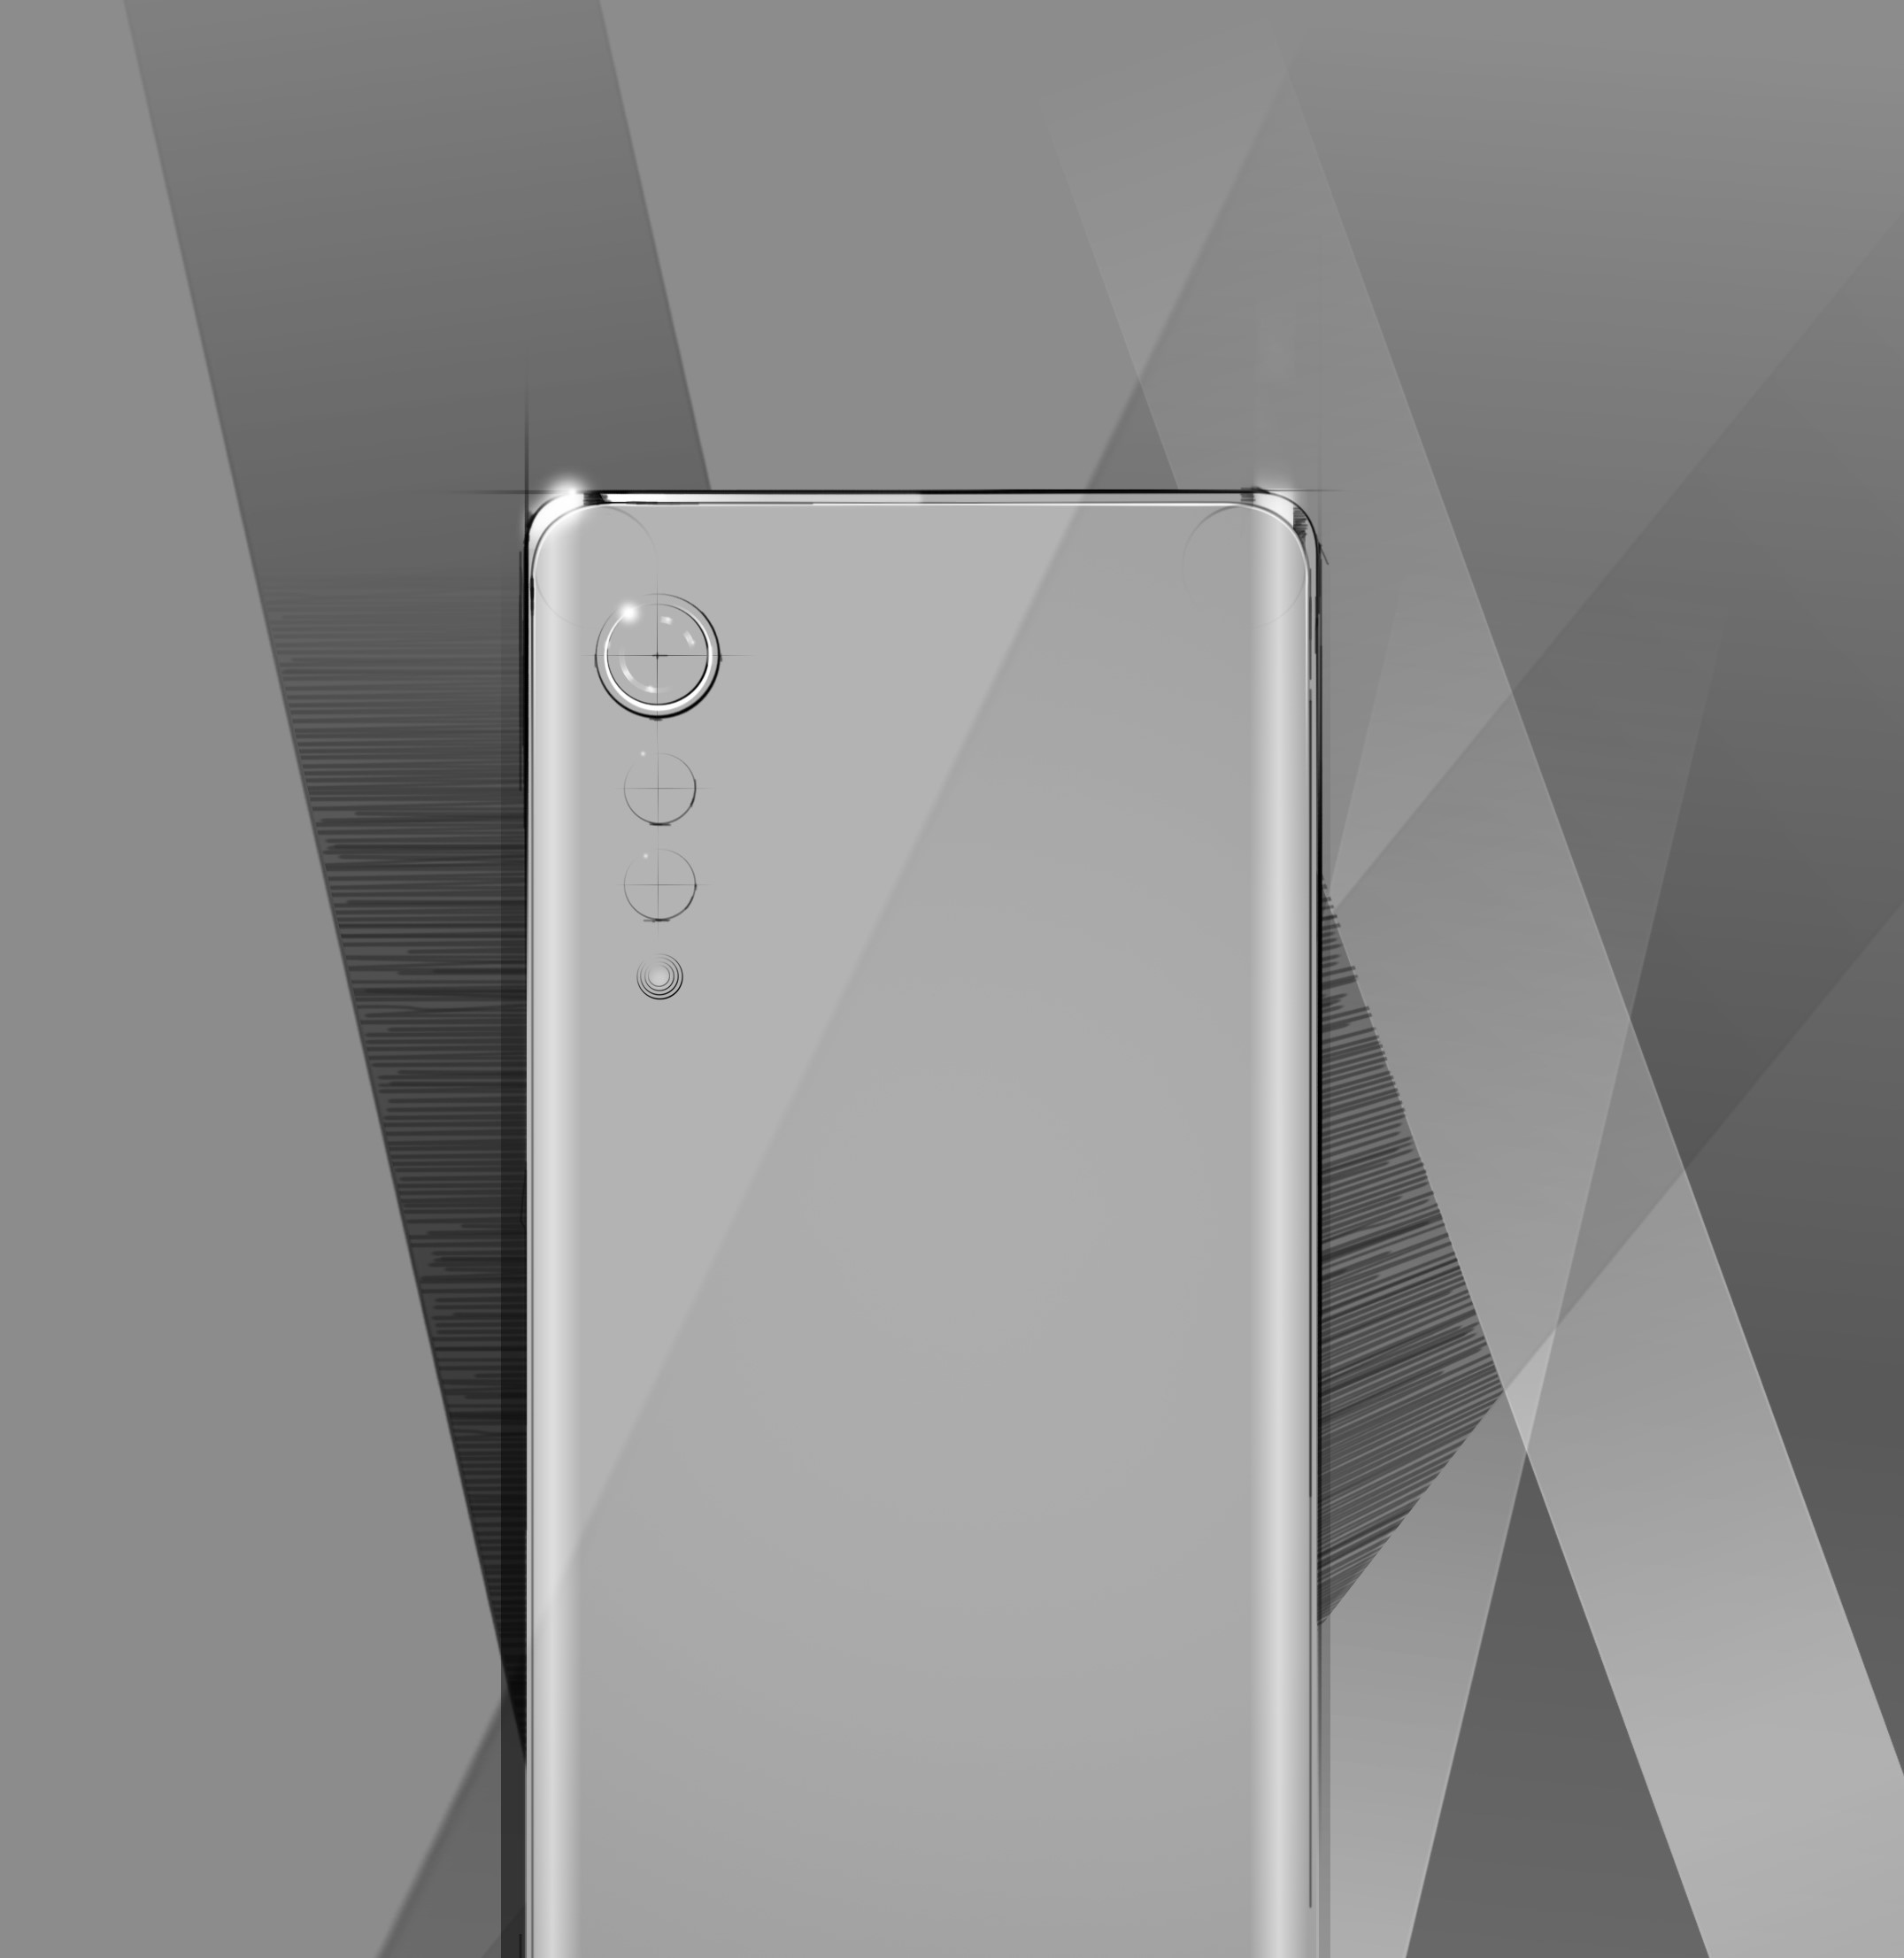 Render image of LG's upcoming flagship smartphone in white